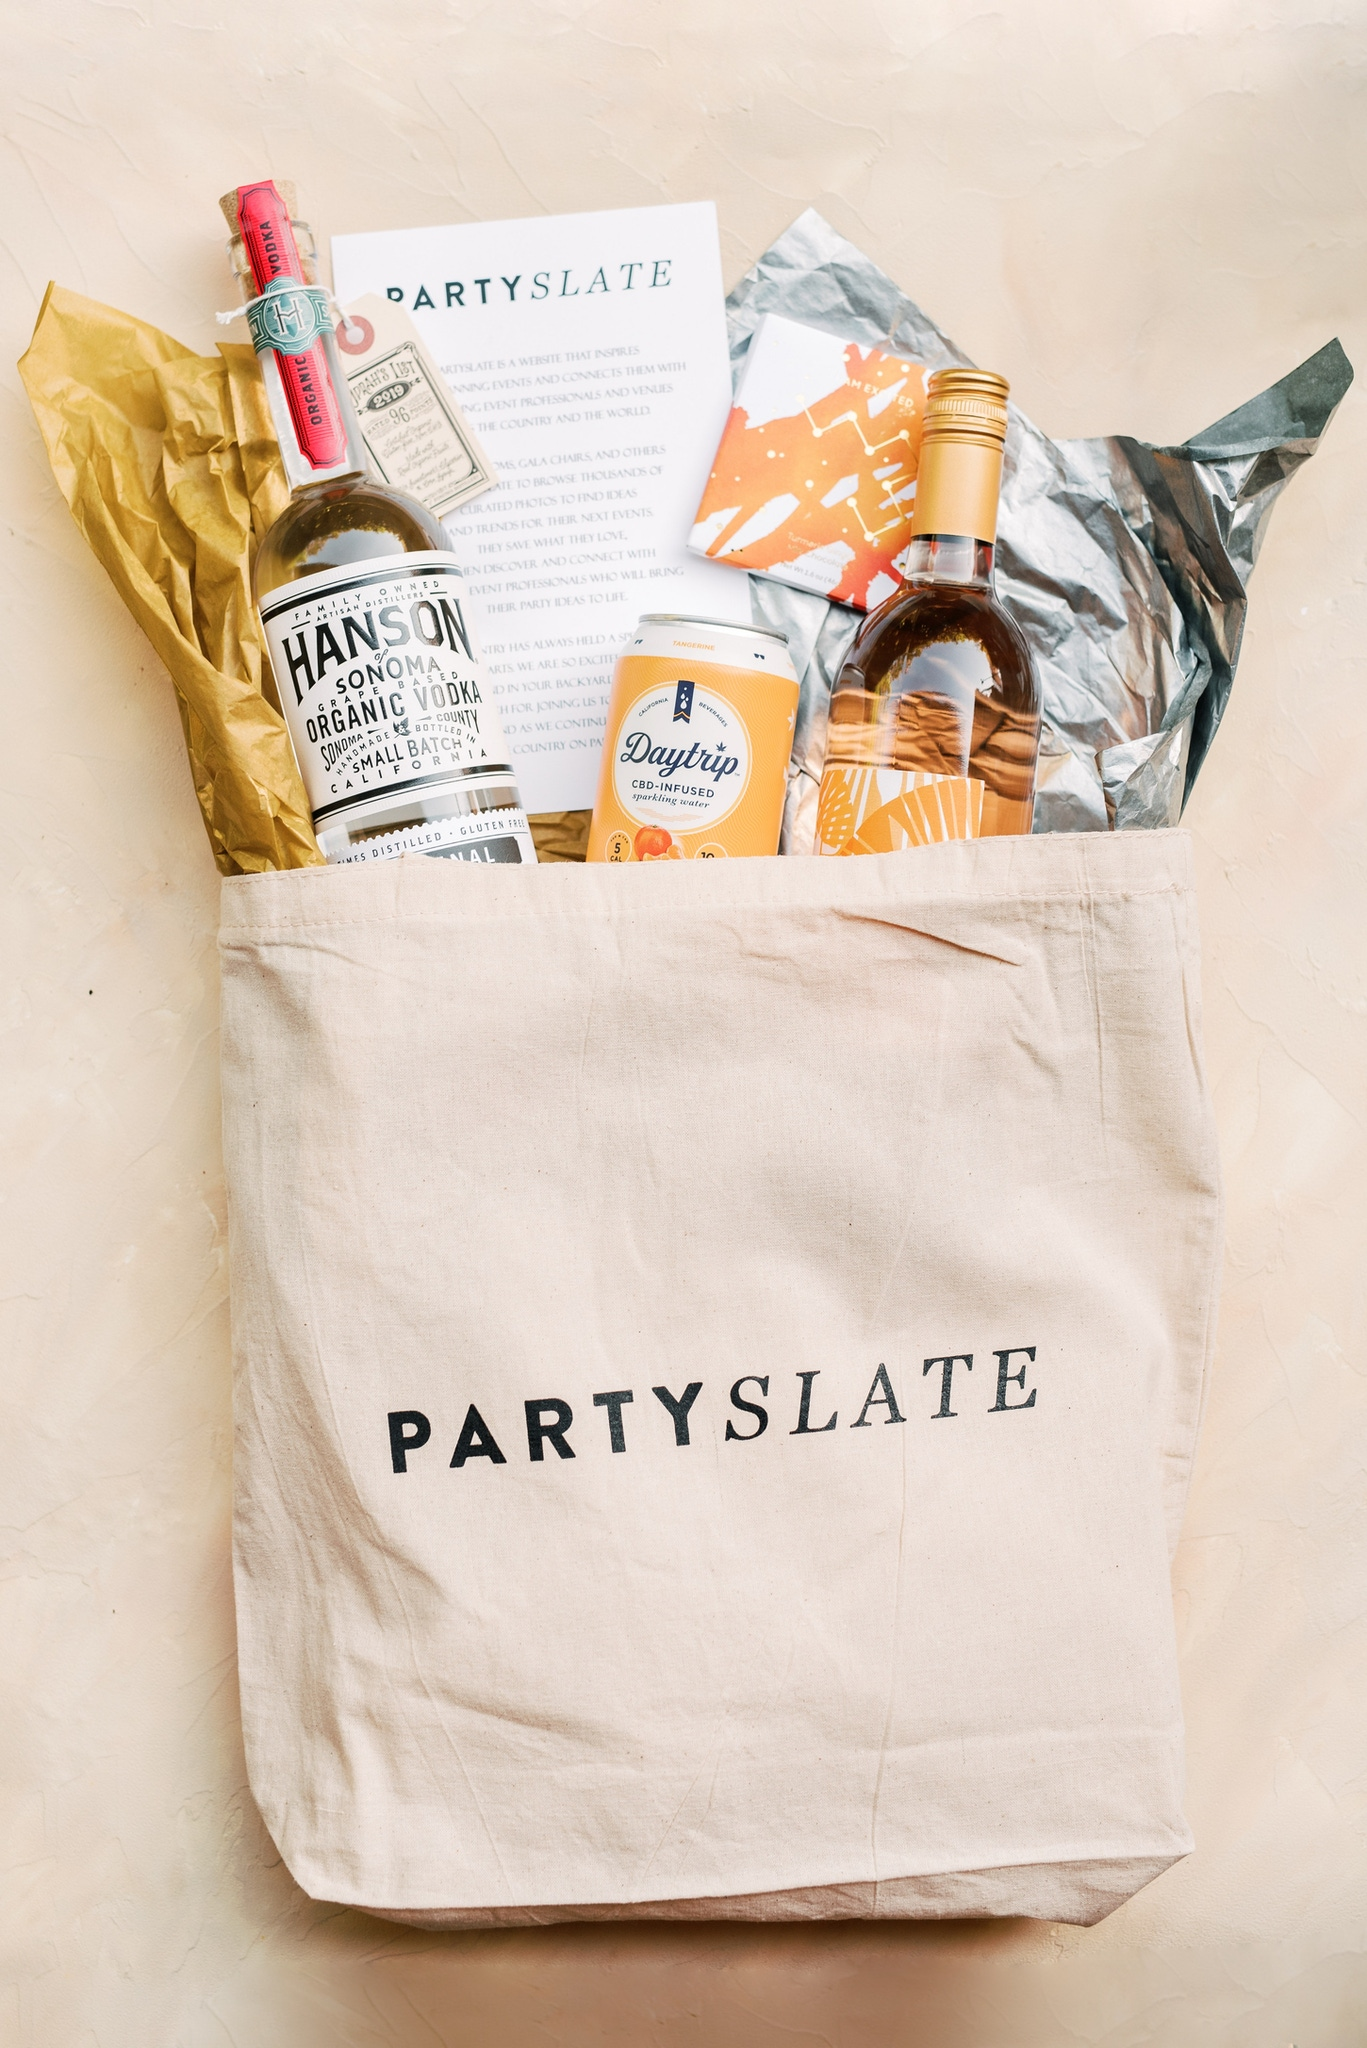 PartySlate goodie bags